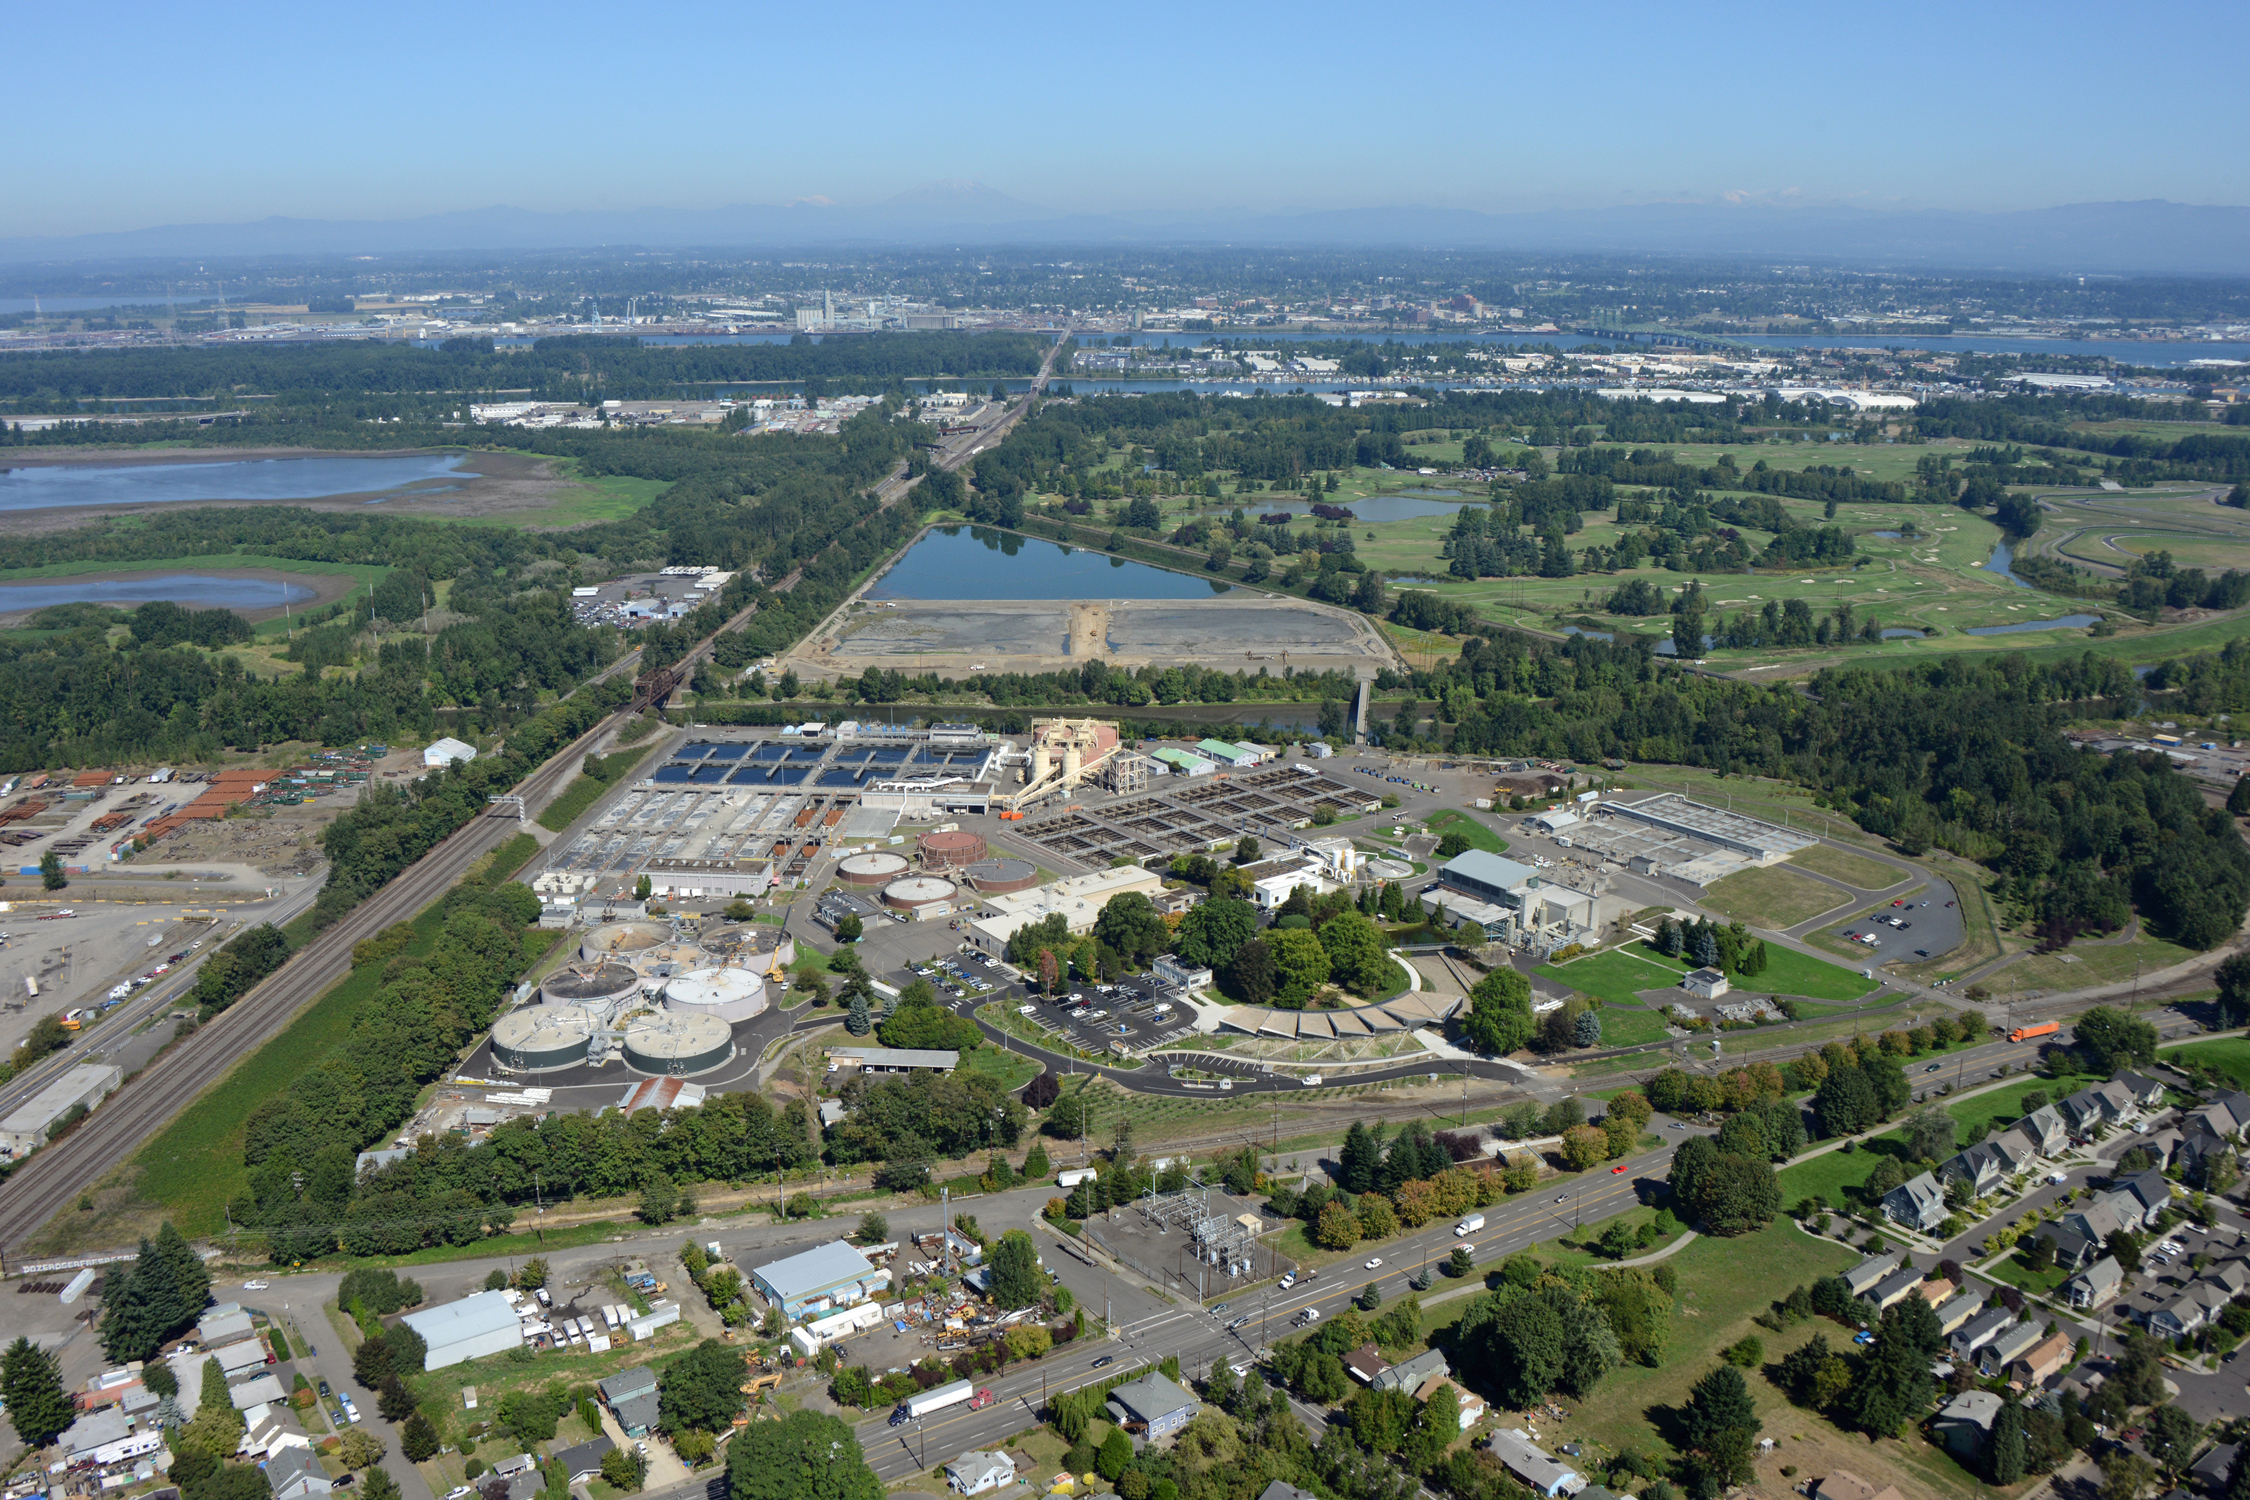 Portland to use sewage gas to shift away from diesel thumbnail